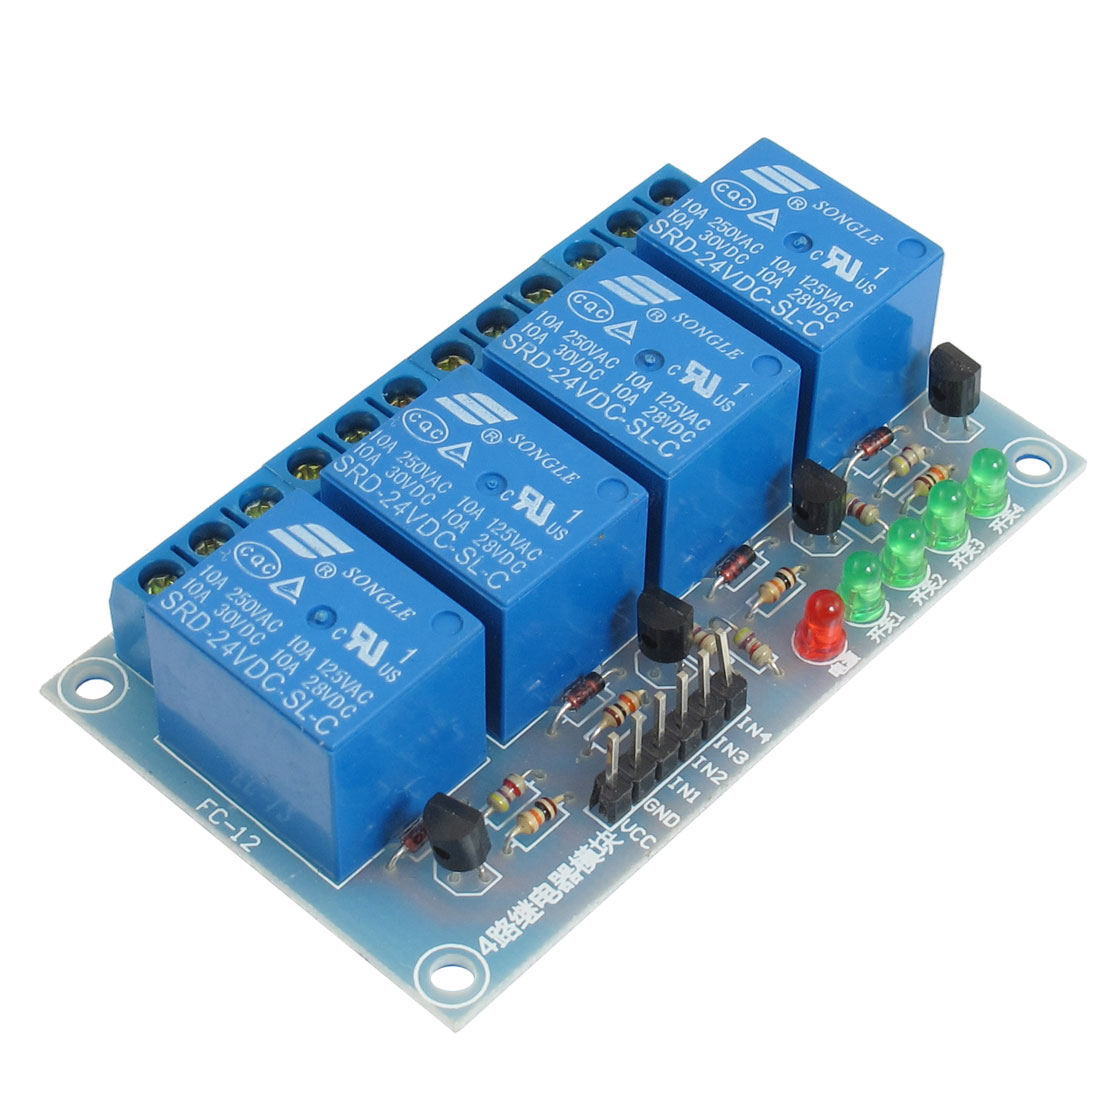 DC 24V 4-Channel Low Level Trigger Relay Module for ARM DSP AVR